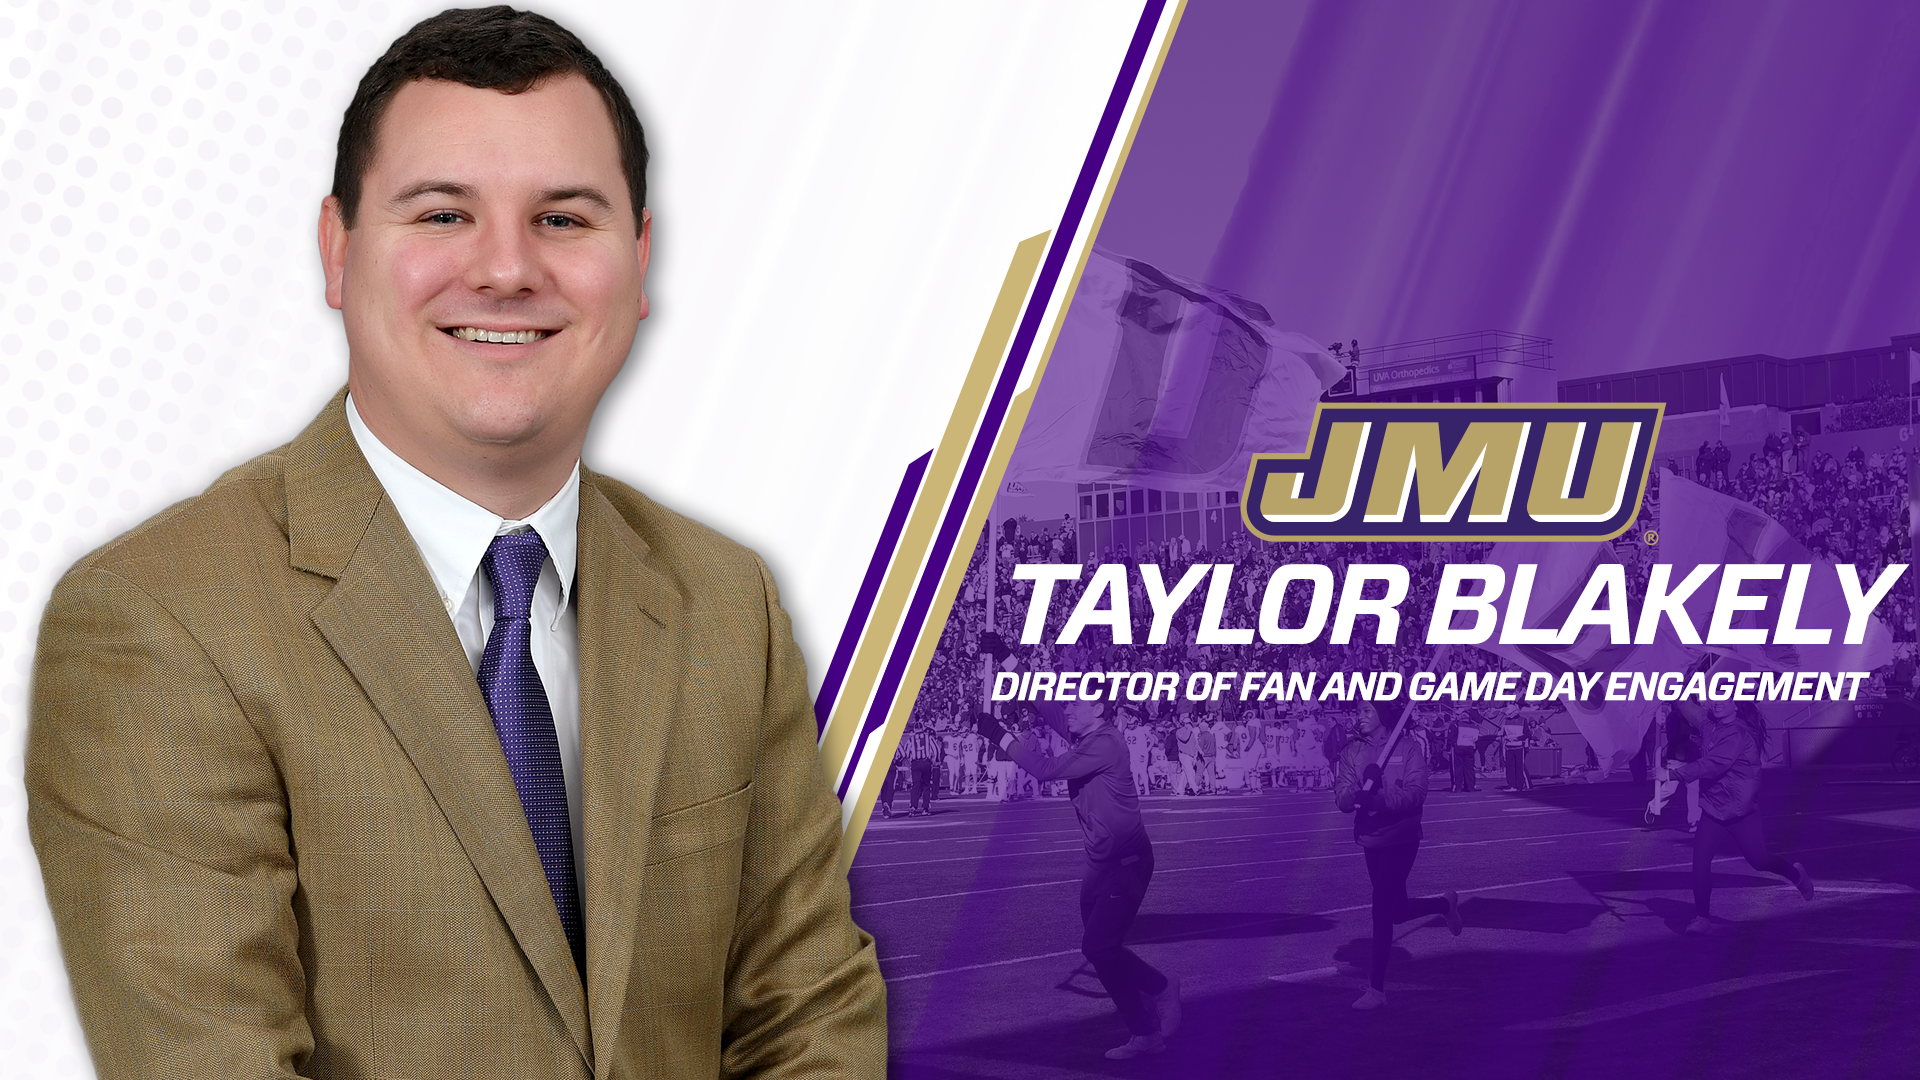 Promotions, Ticketing: Blakely Hired as Director of Fan and Game Day Engagement